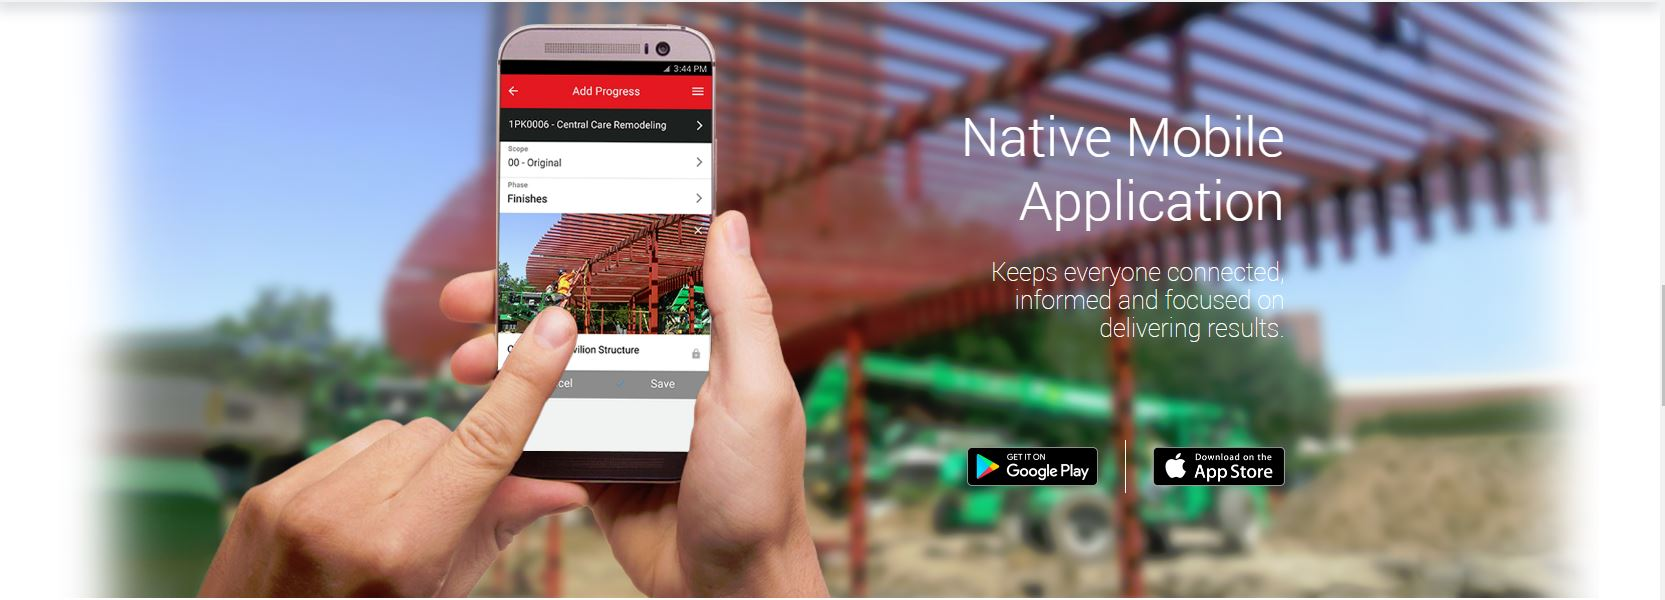 Native Mobile Application